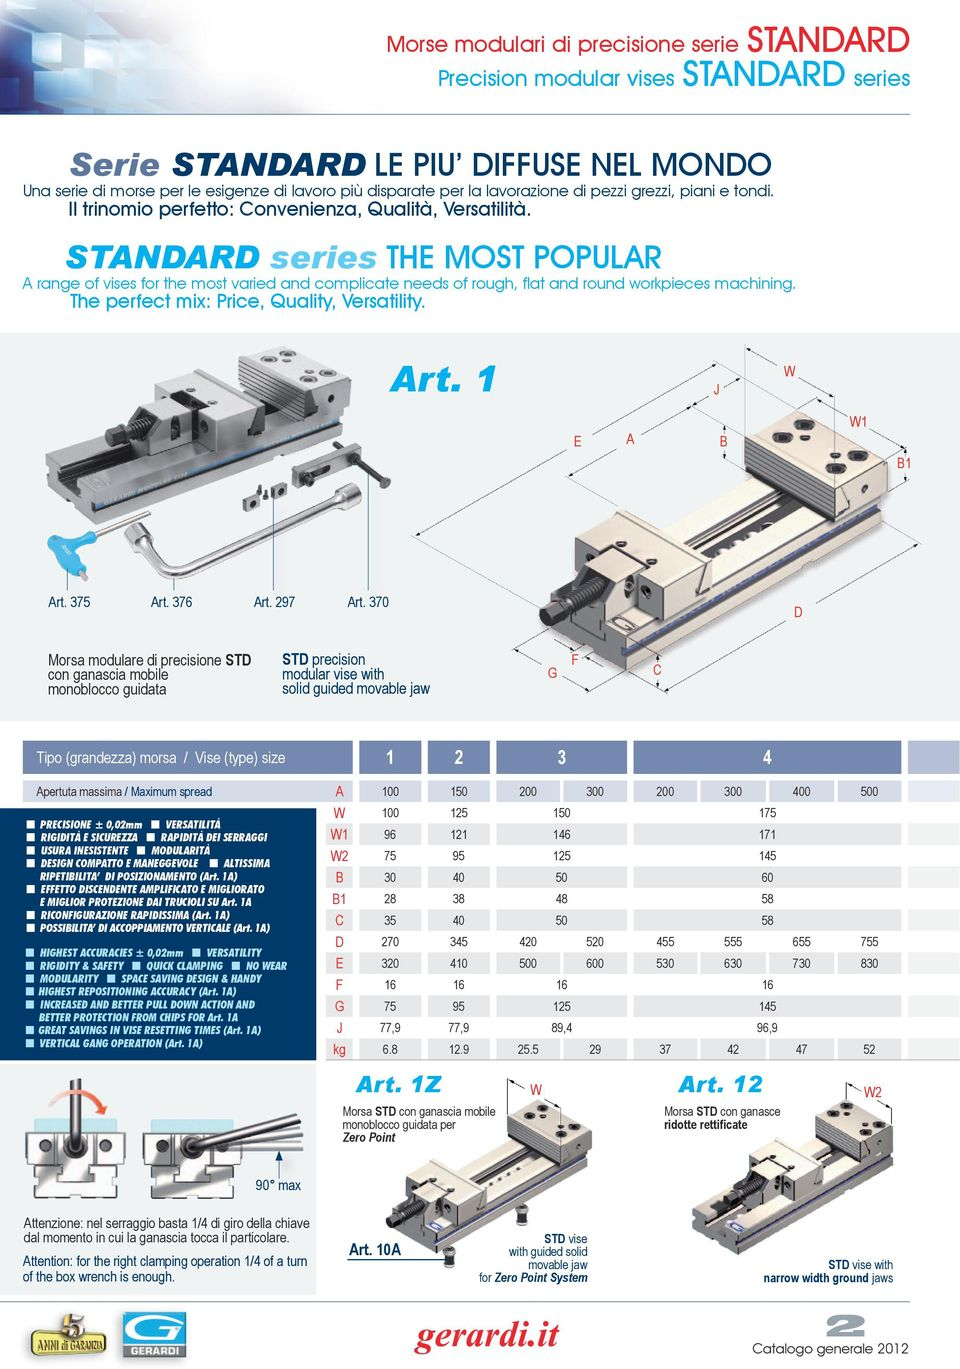 STNR series TE MOST POPULR range of vises for the most varied and complicate needs of rough, flat and round workpieces machining. The perfect mix: Price, Quality, Versatility. rt. 1 E 1 1 rt. 375 rt.